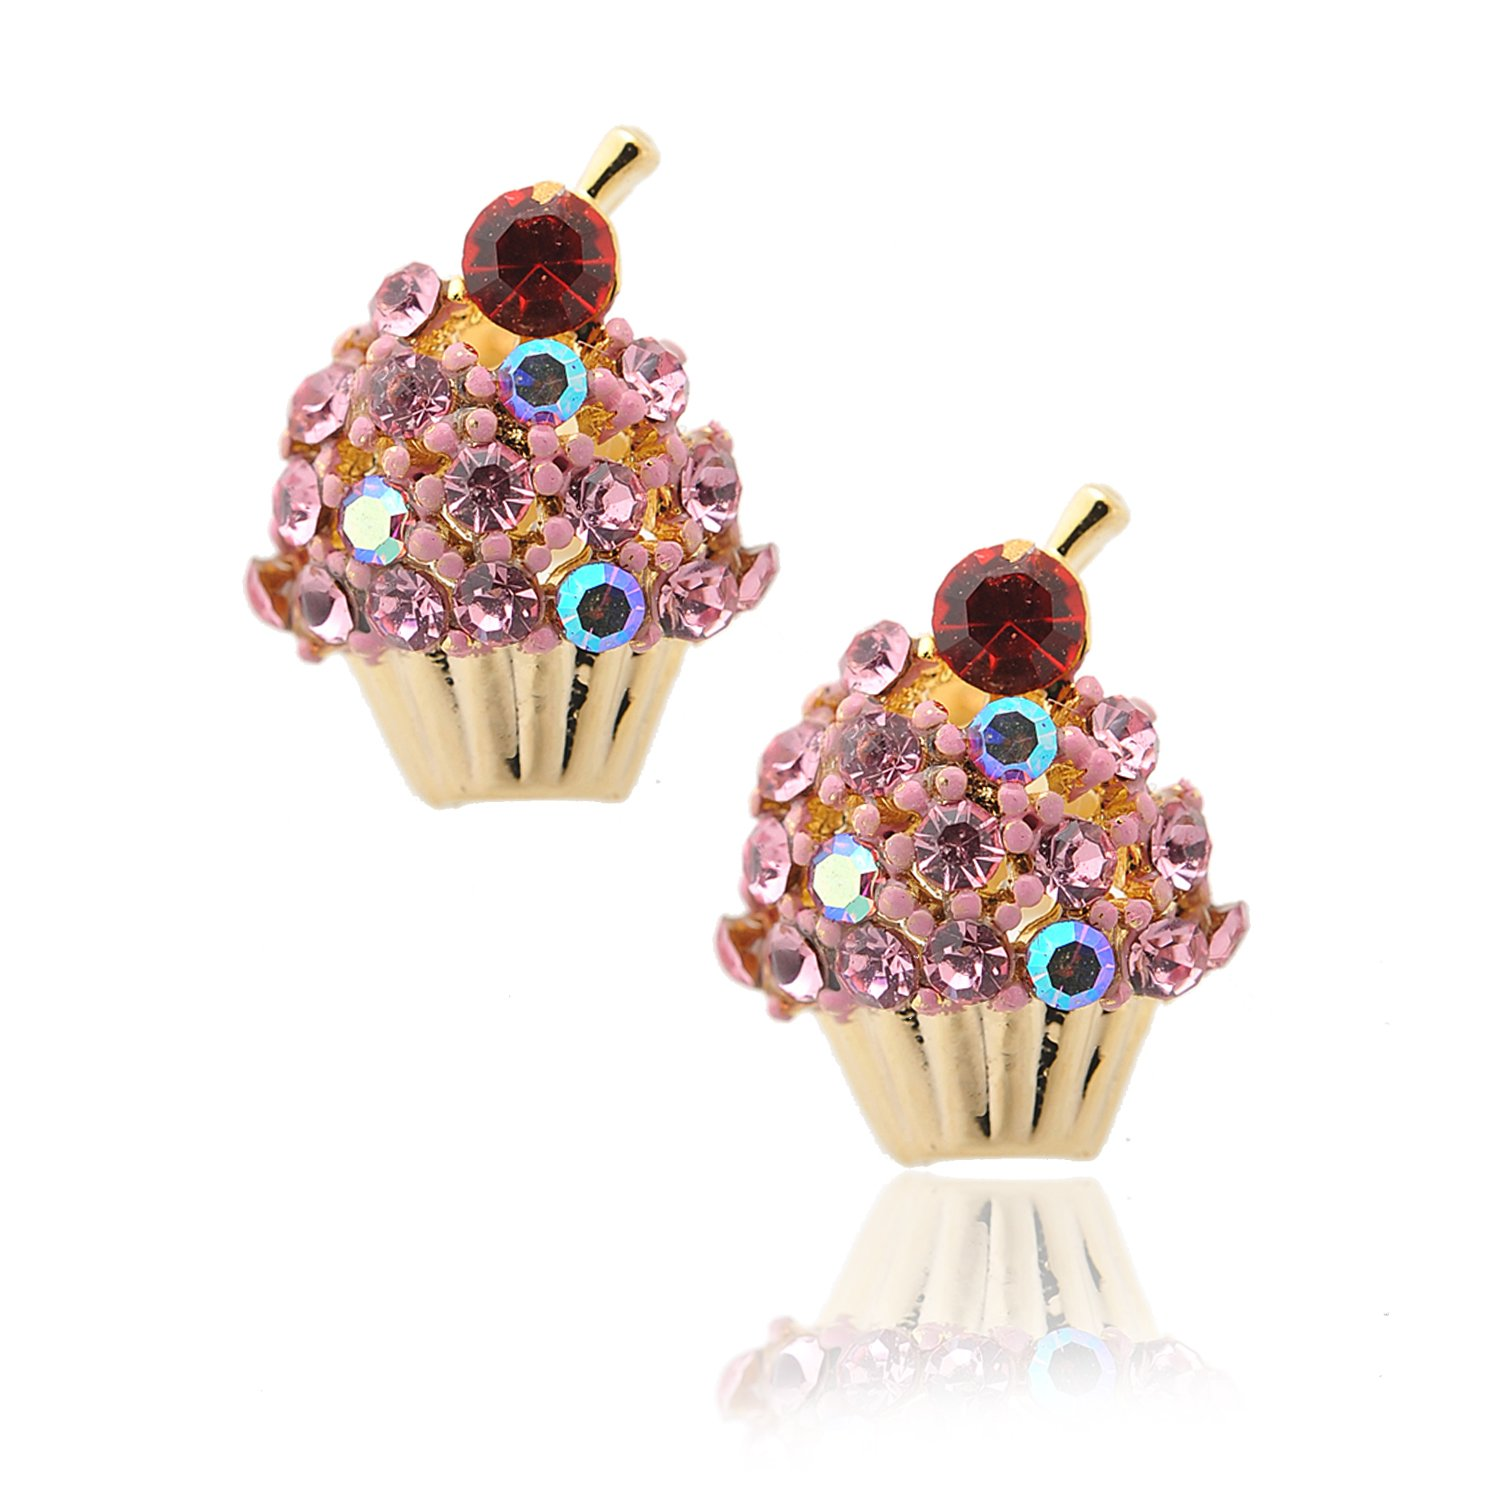 Spinningdaisy Crystal Cherry on the Top Cupcake Earrings (Pink)